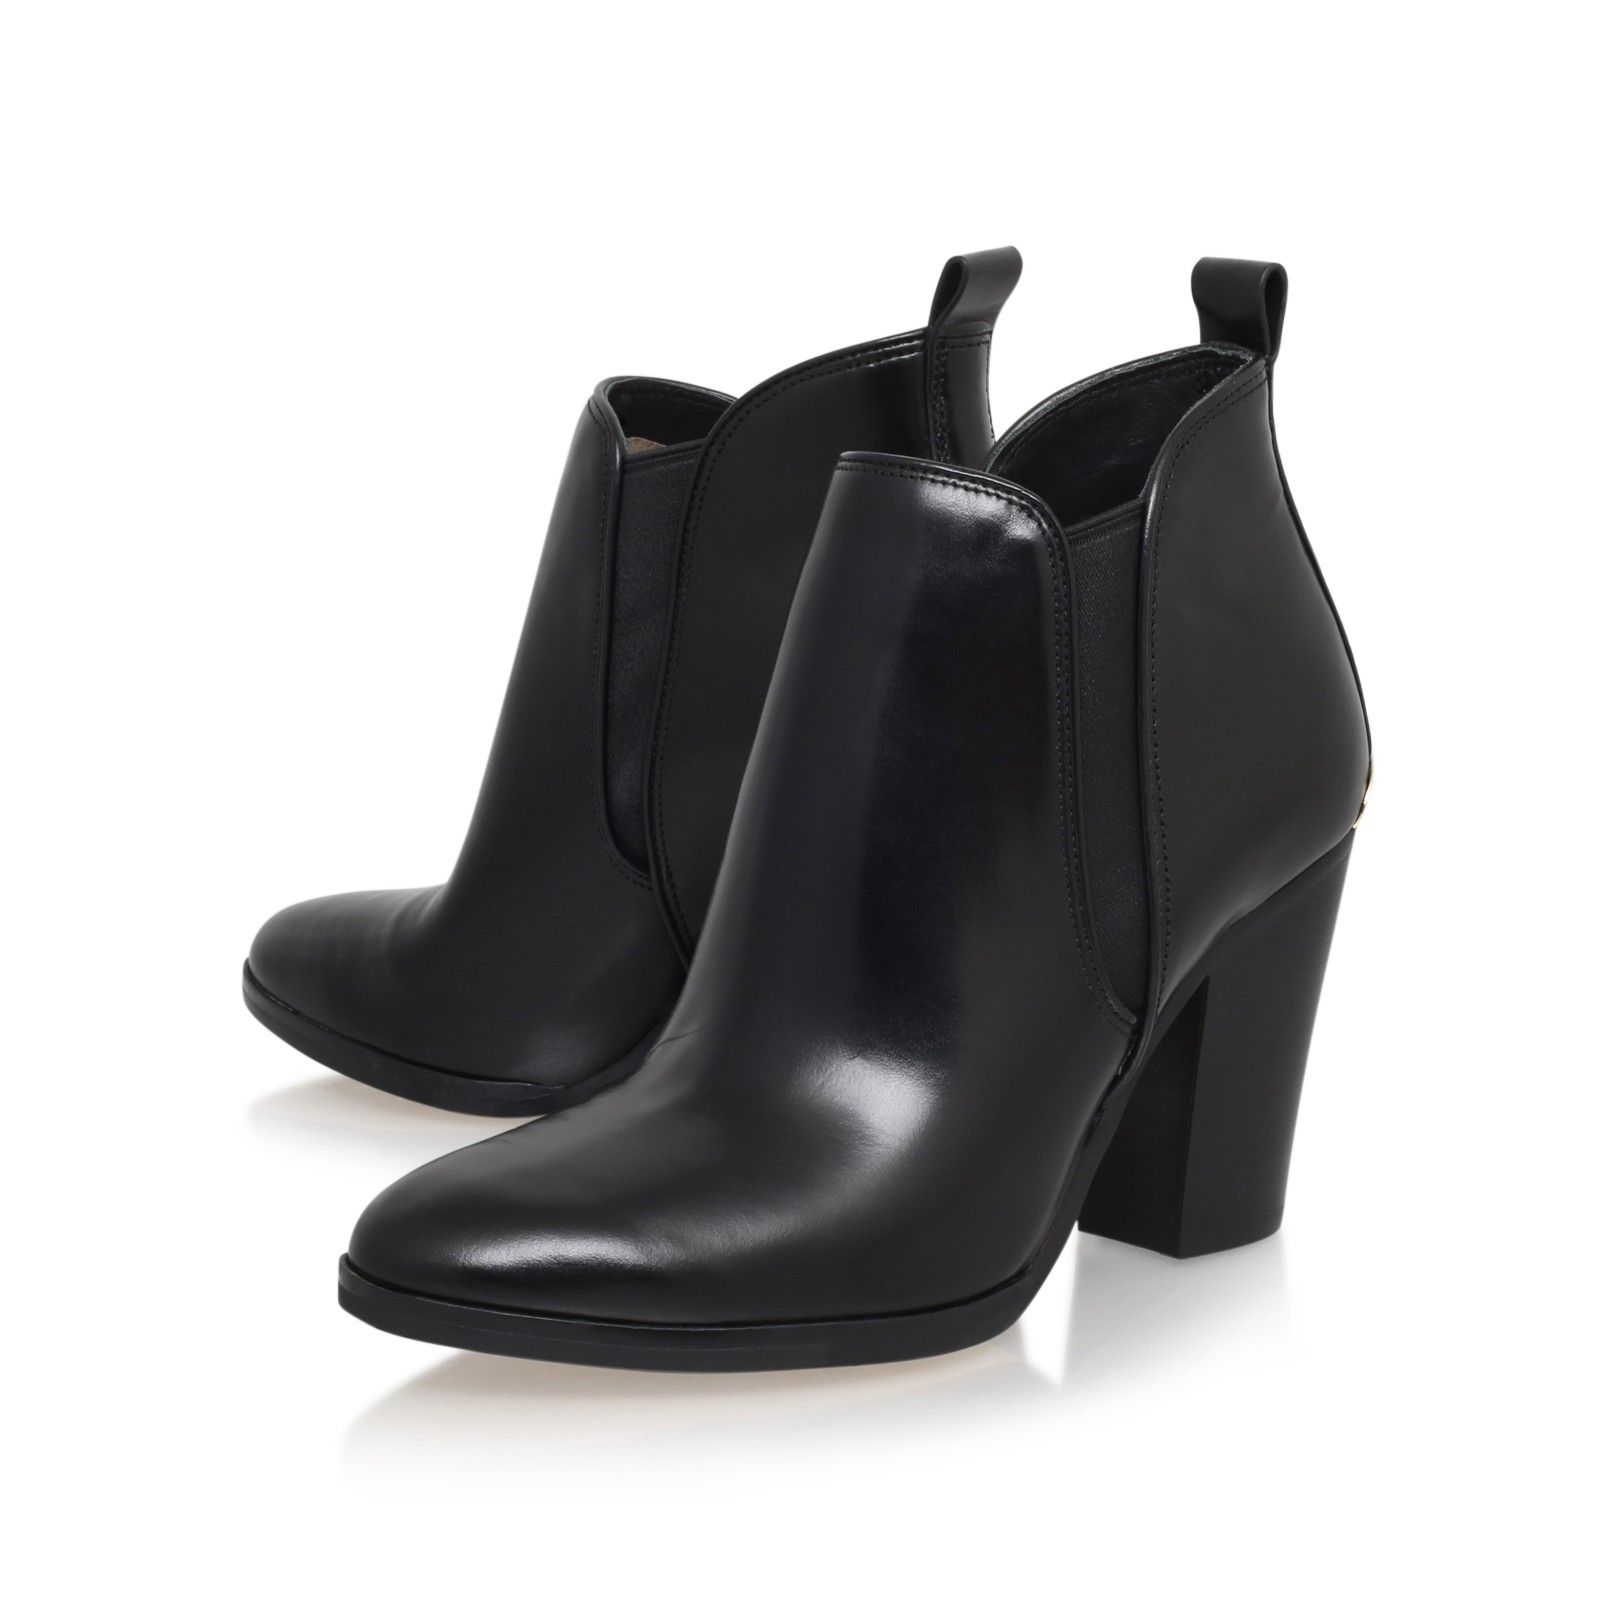 6c9e21d74cee brandy bootie black mid heel ankle boots from Michael Michael Kors ...